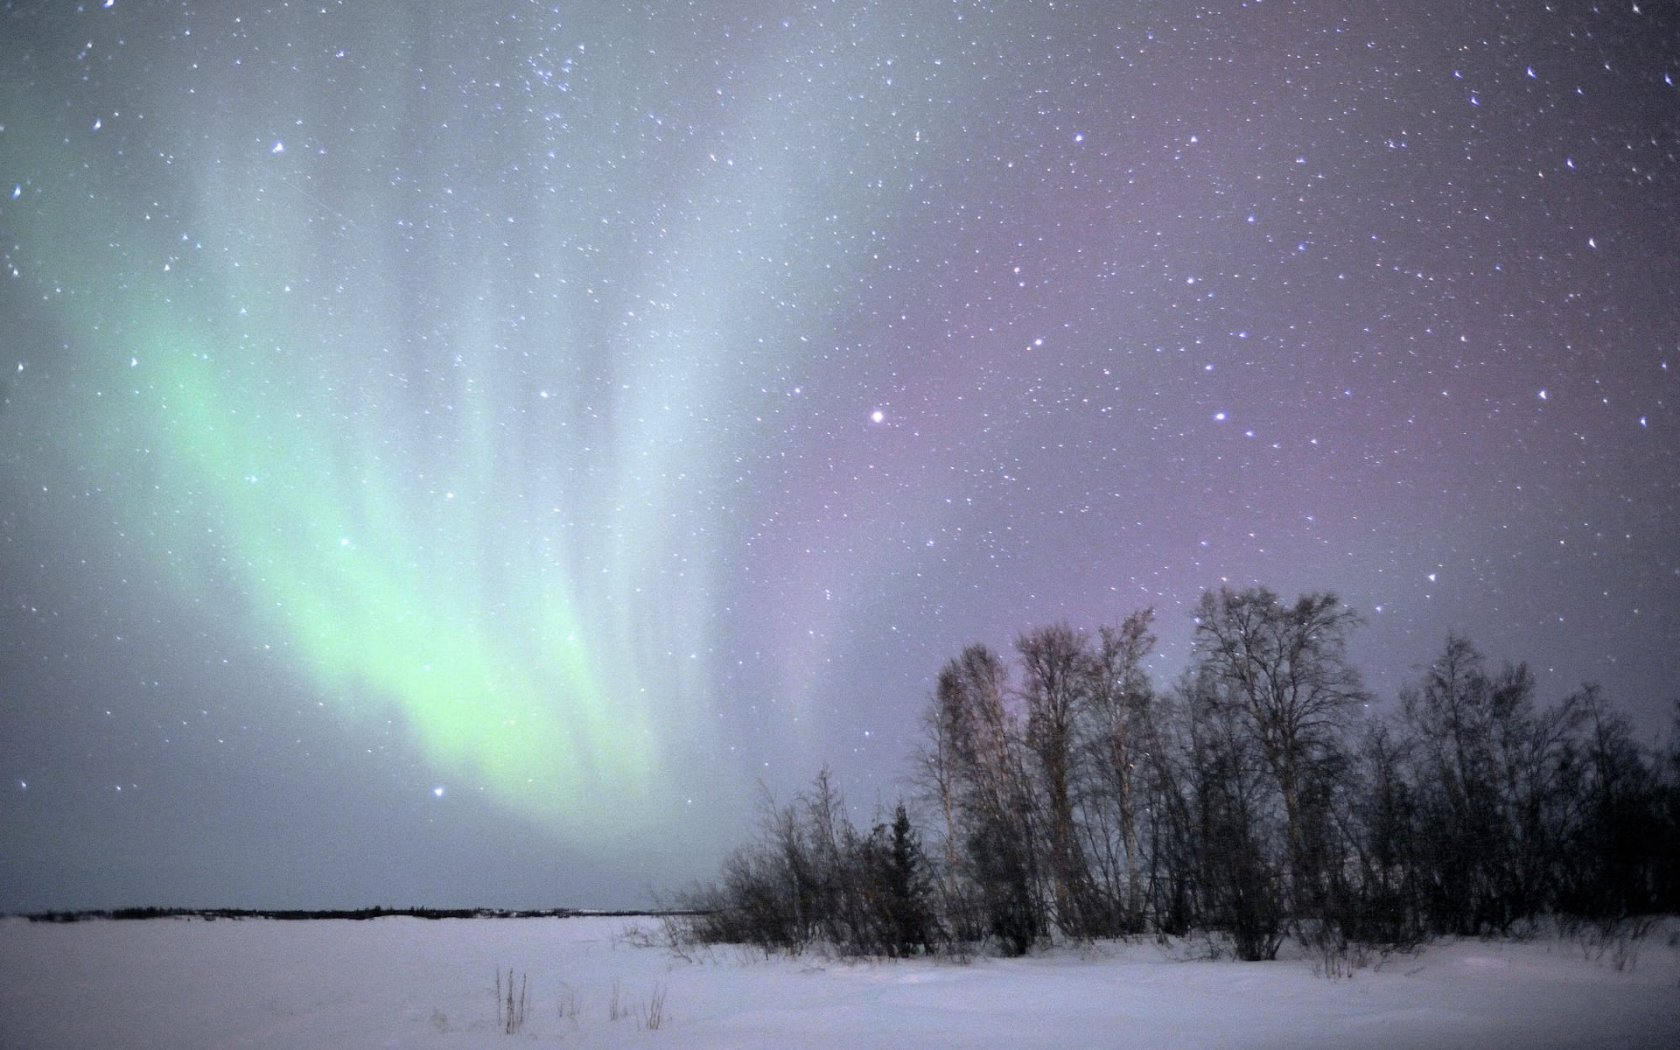 3d Japanese Wallpaper Aurora Borealis Northwest Territories Canada Winter Snow